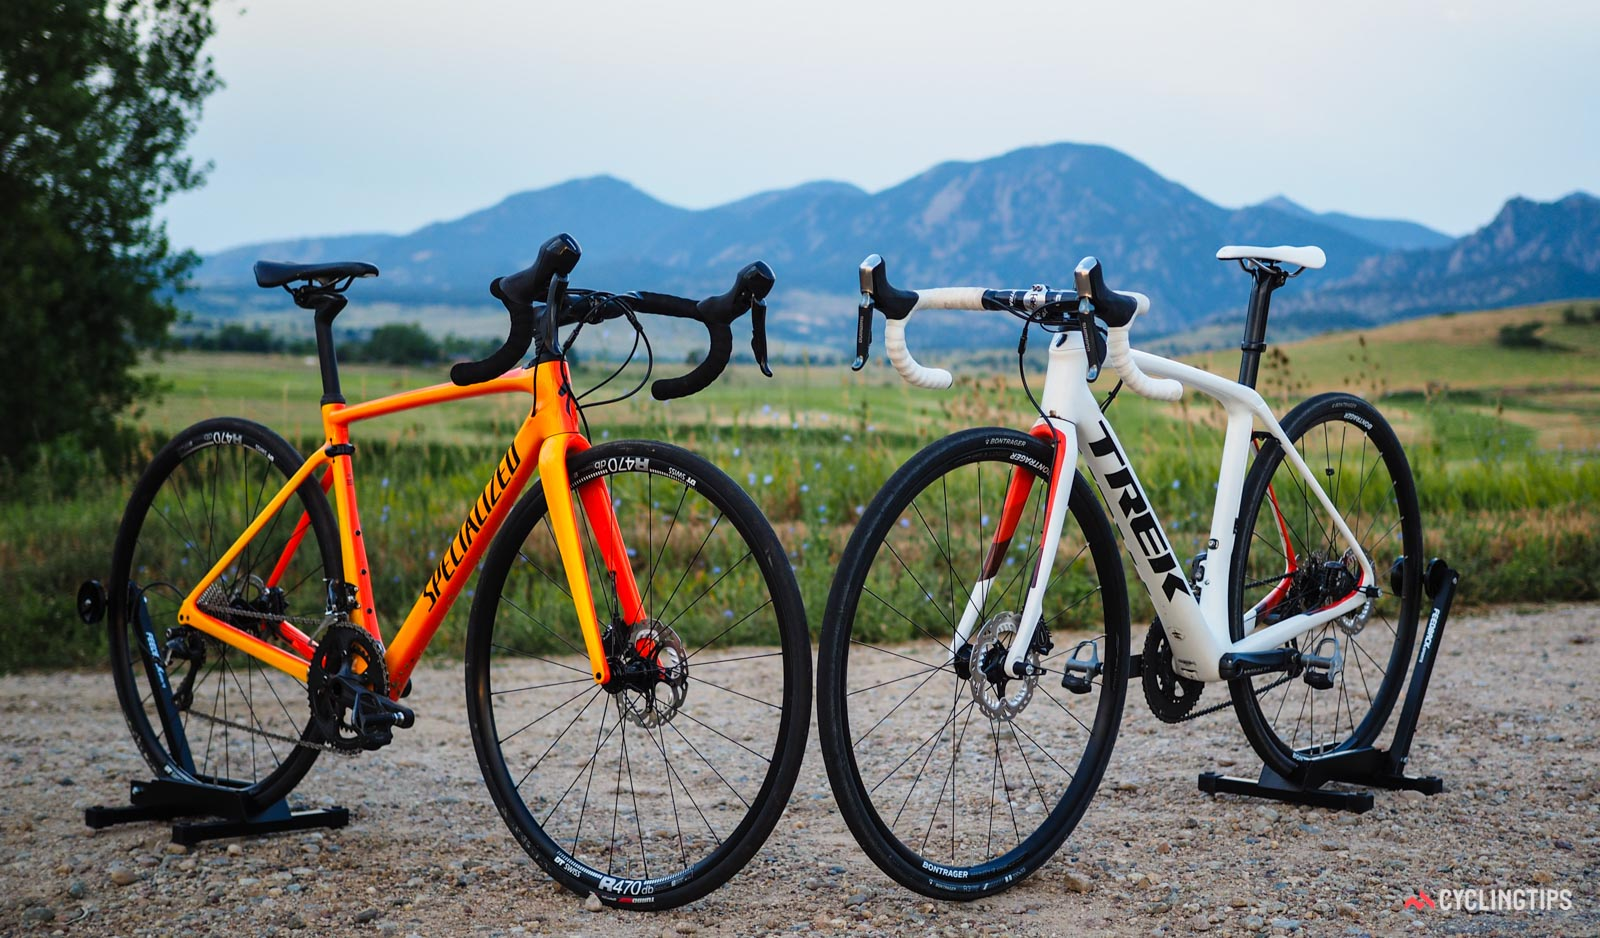 Endurance-oriented bikes have become more compliant